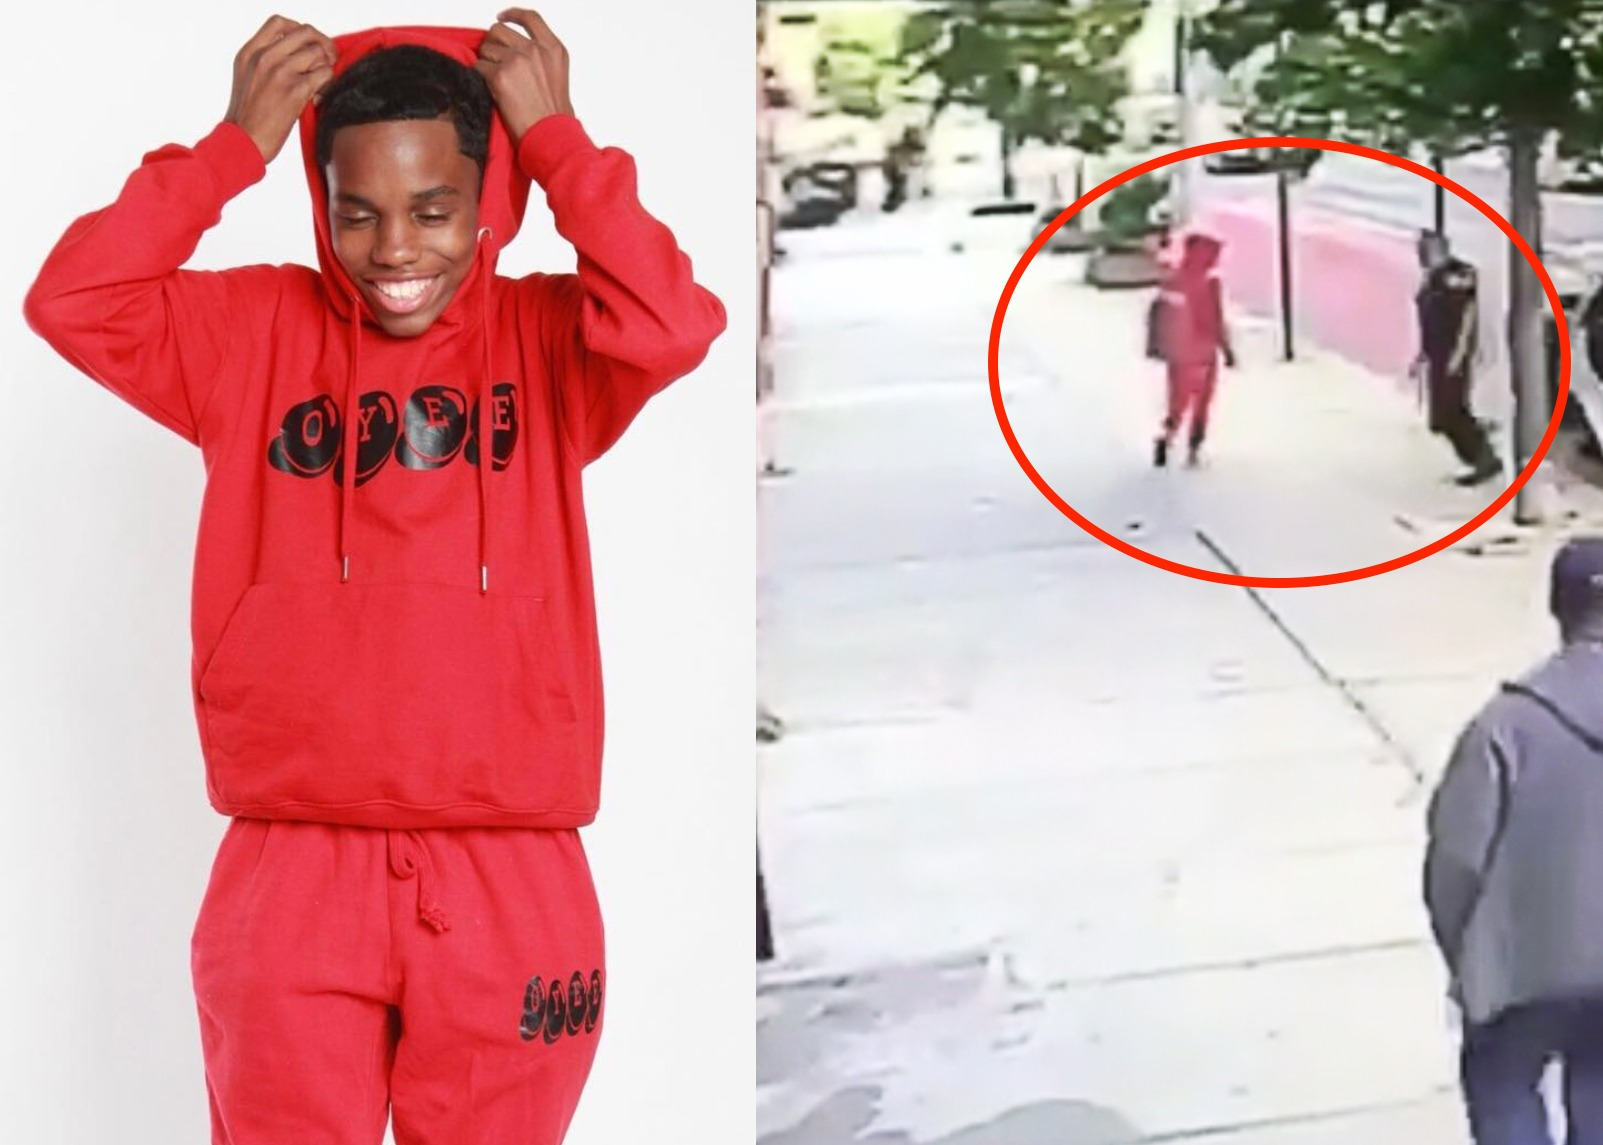 """NYPD Nabs Wrong Teen in """"Shots Fired"""" Call, Falsely Charge him with Crime anyway"""